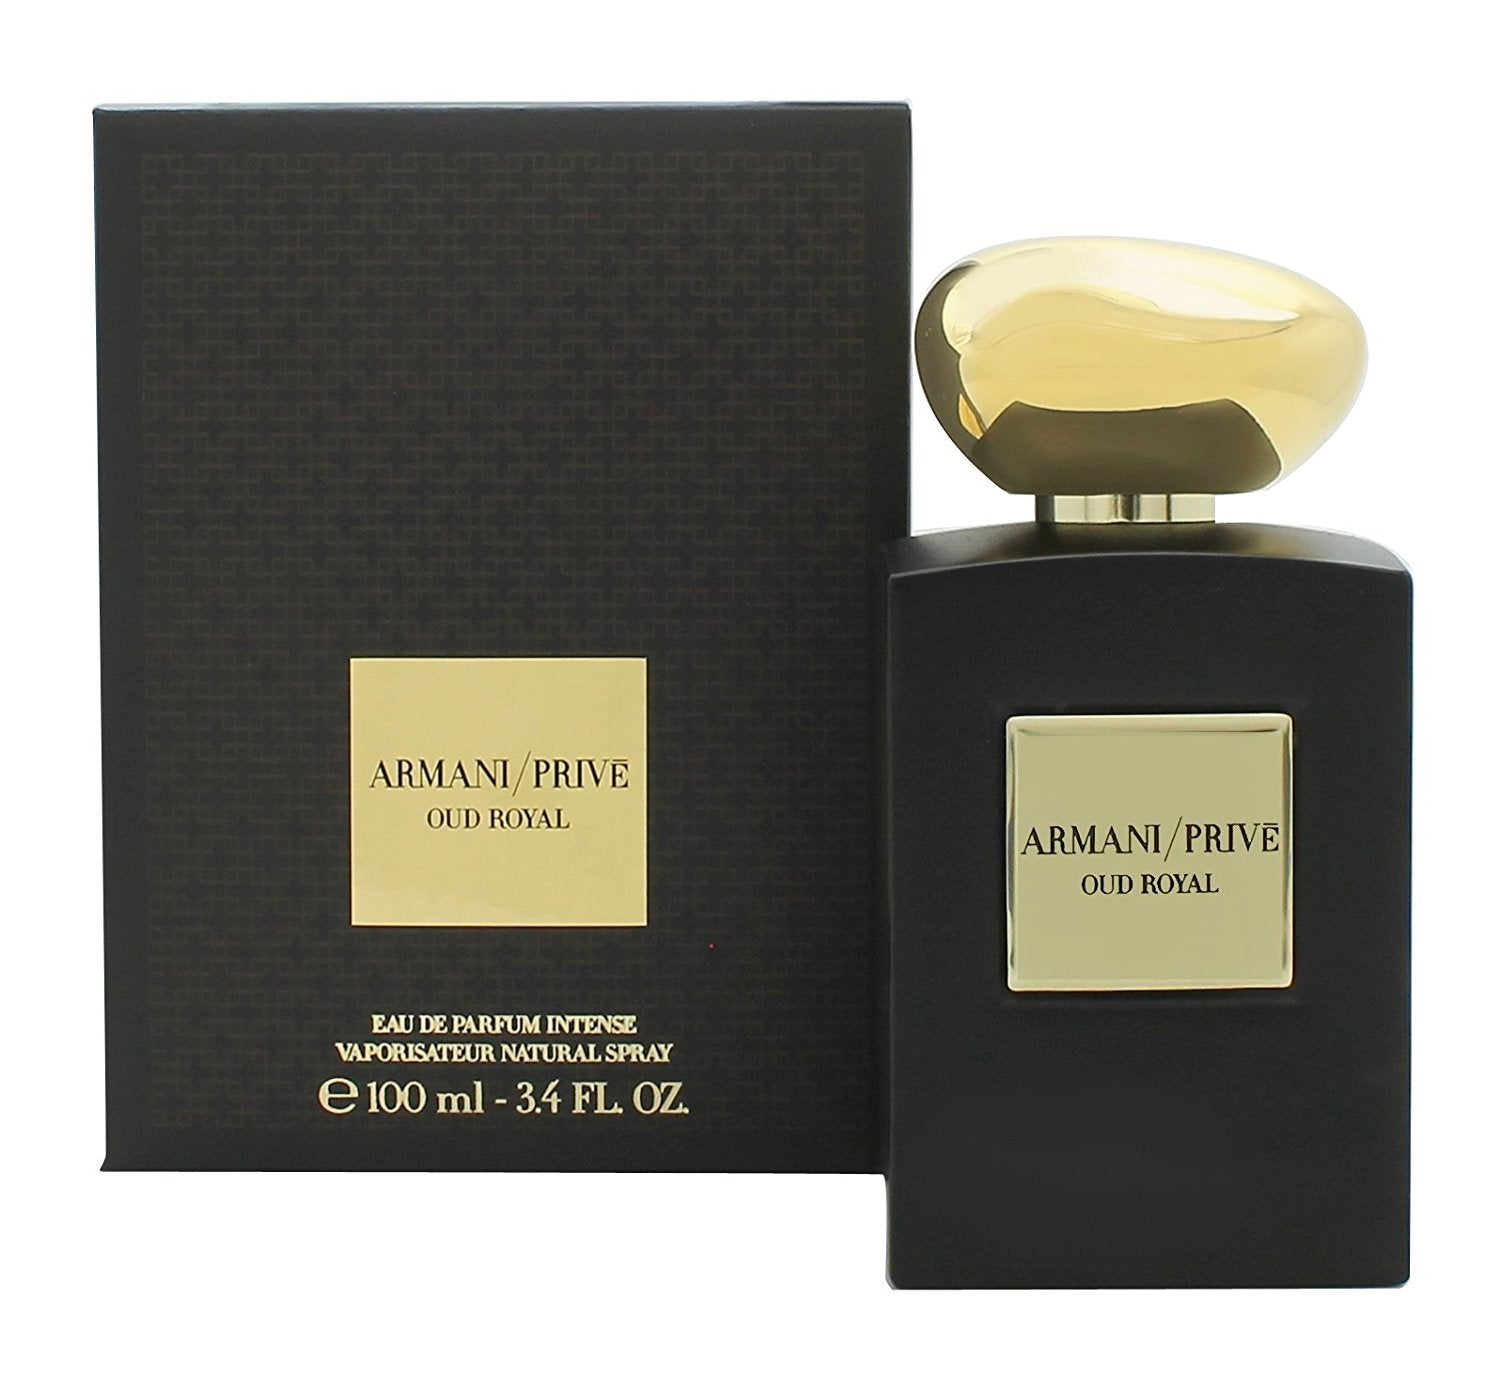 Perfume oil inspired by Armani Prive Oud Royal